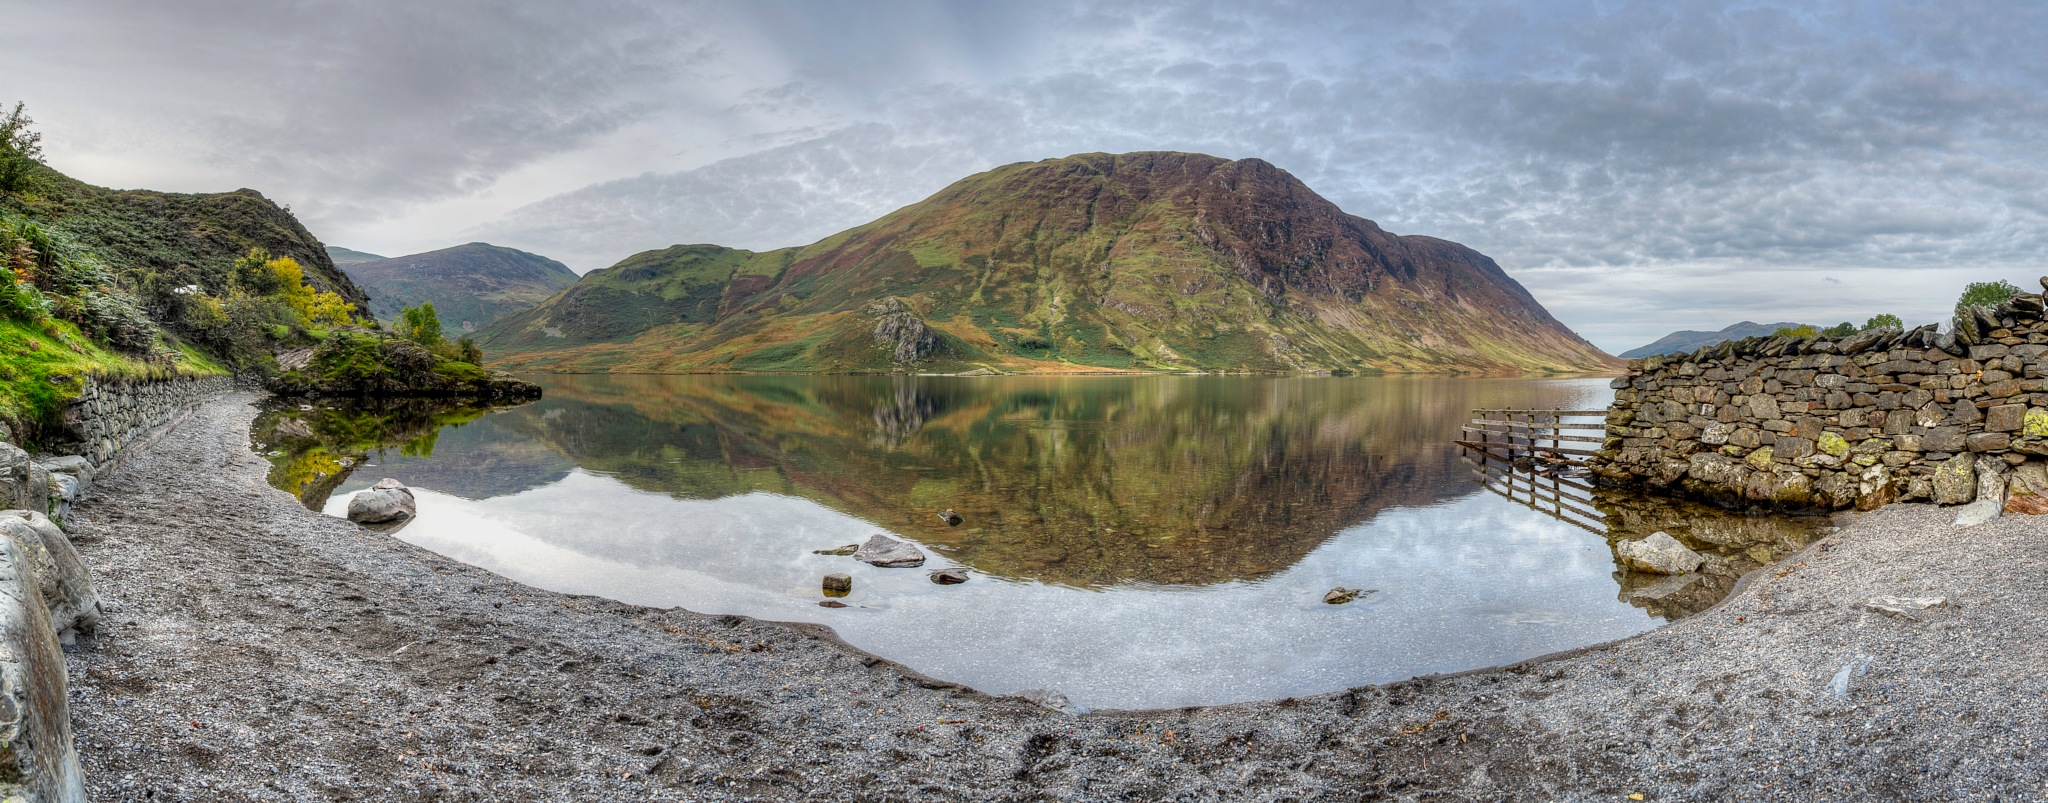 Buttermere by GazMcAloon